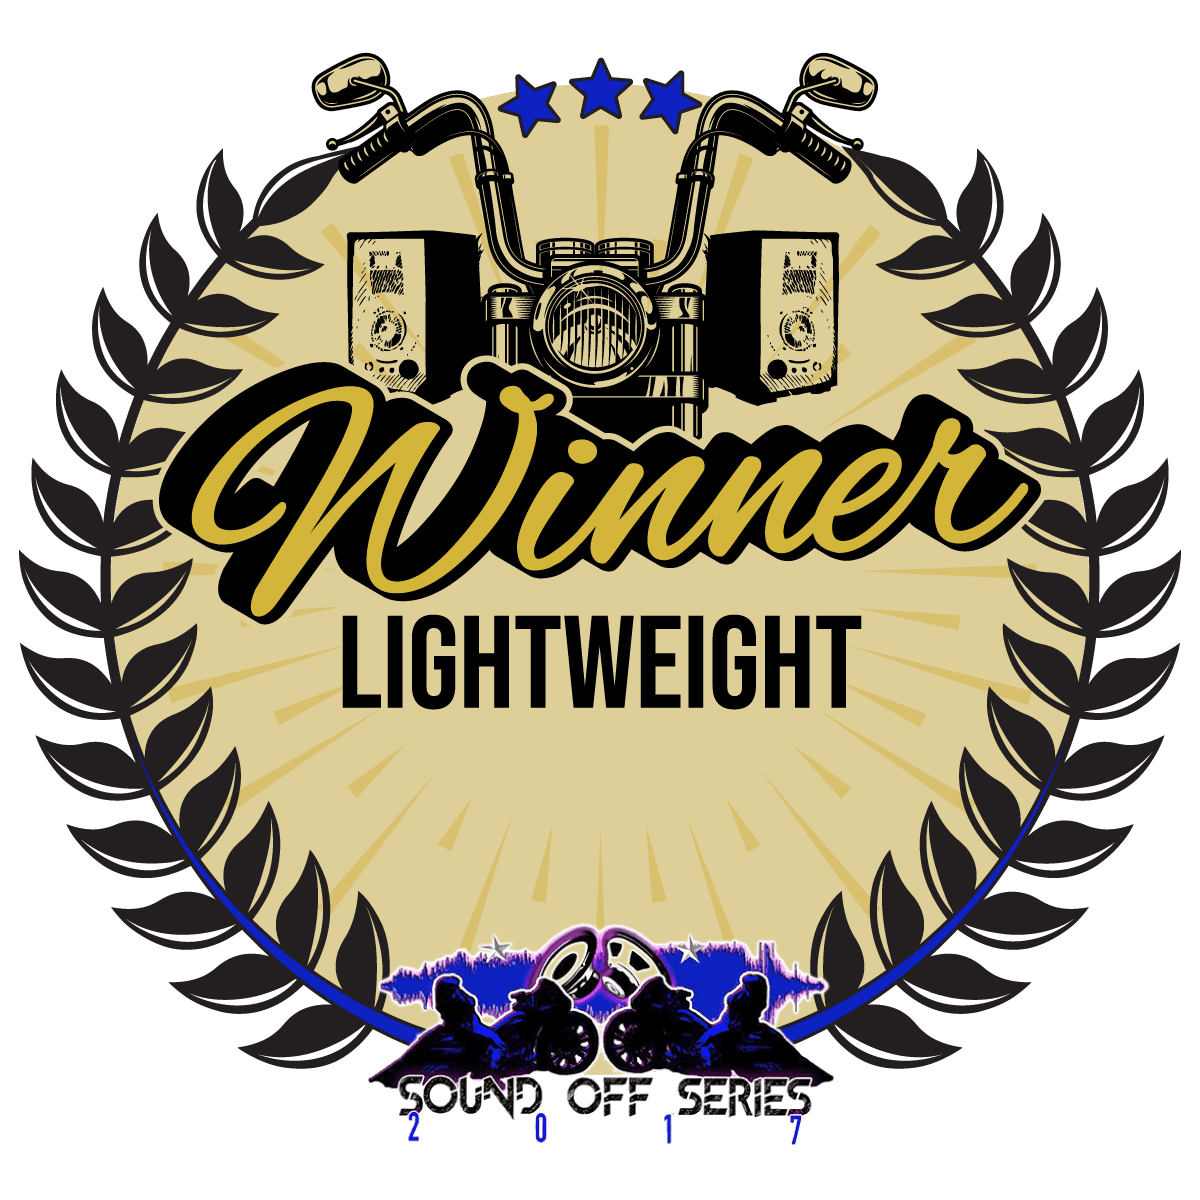 290810_WinnerGraphic_Op1-Lighweight_092418